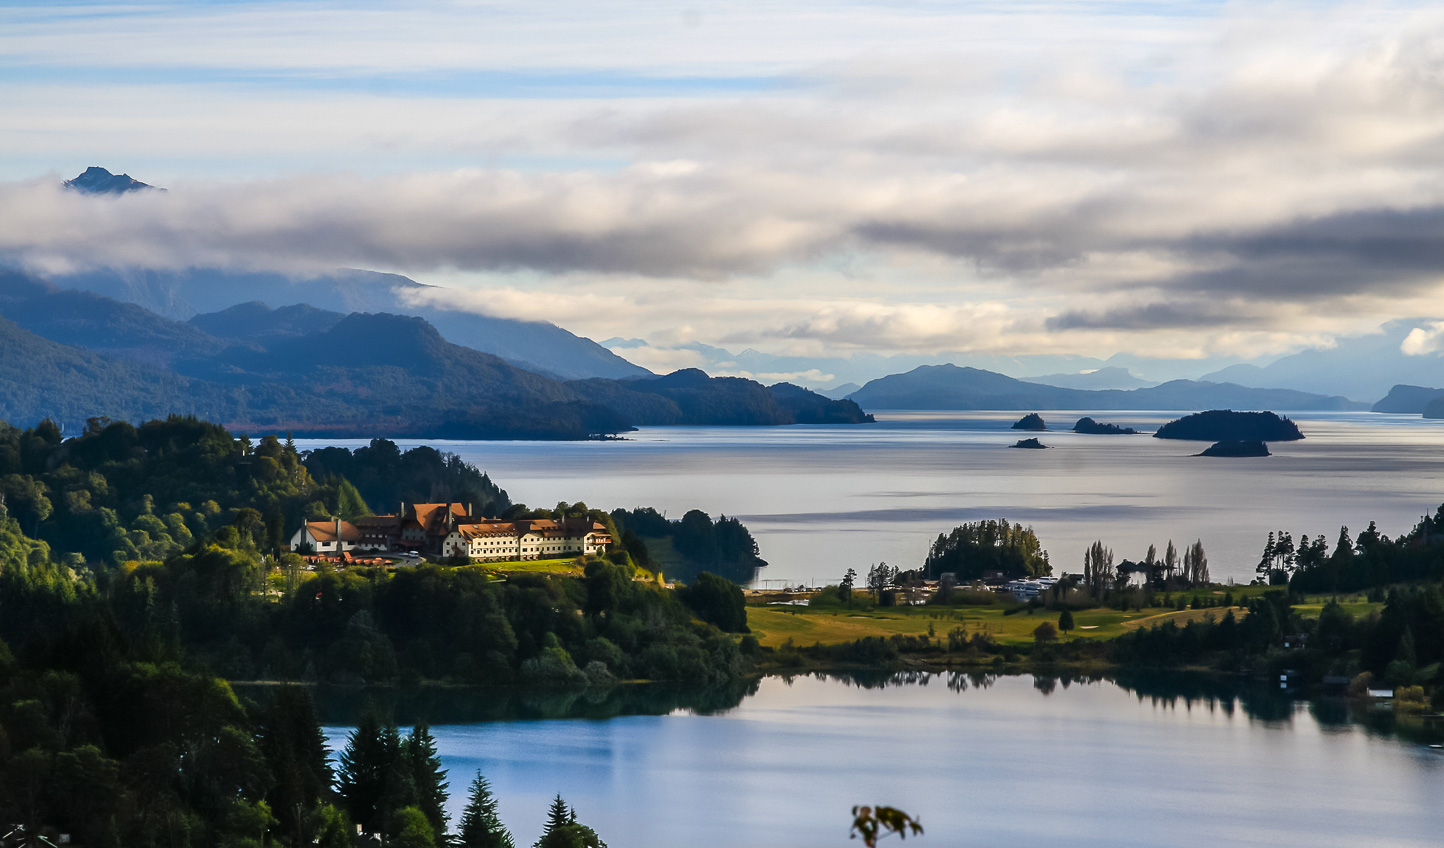 Soak up the breathtaking beauty of Argentina's Lake District